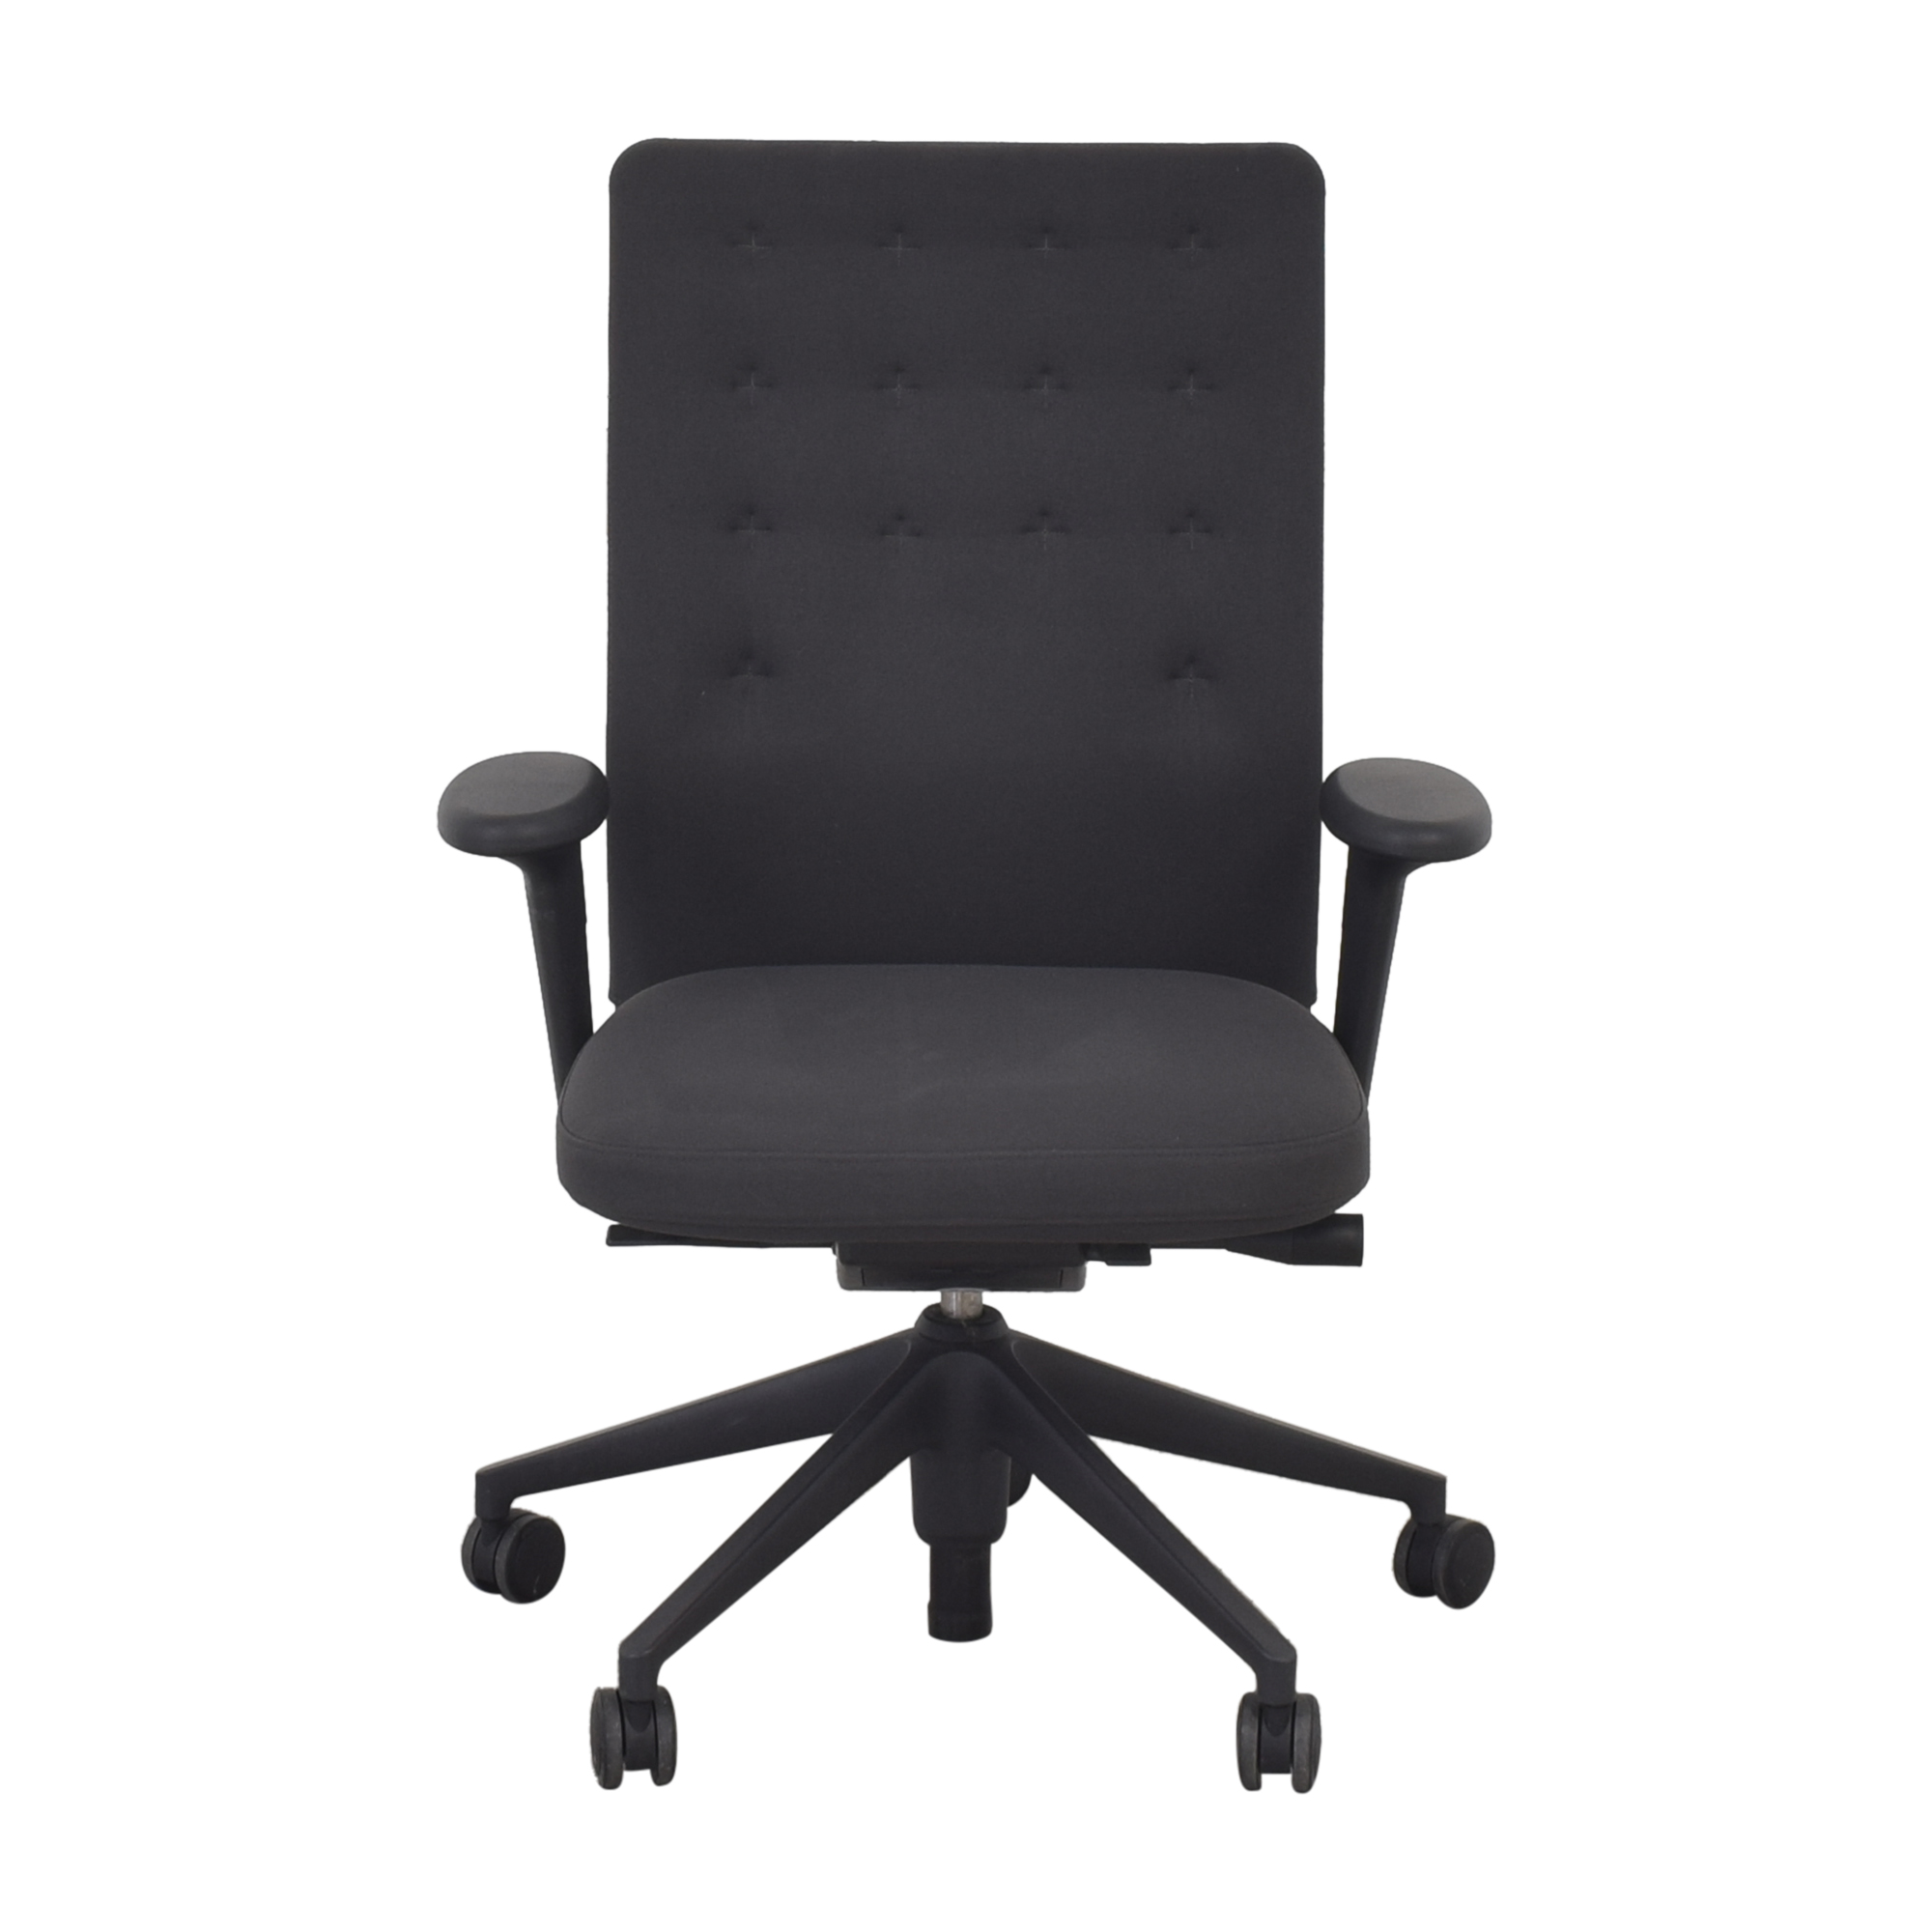 Vitra ID Trim Office Chair / Chairs